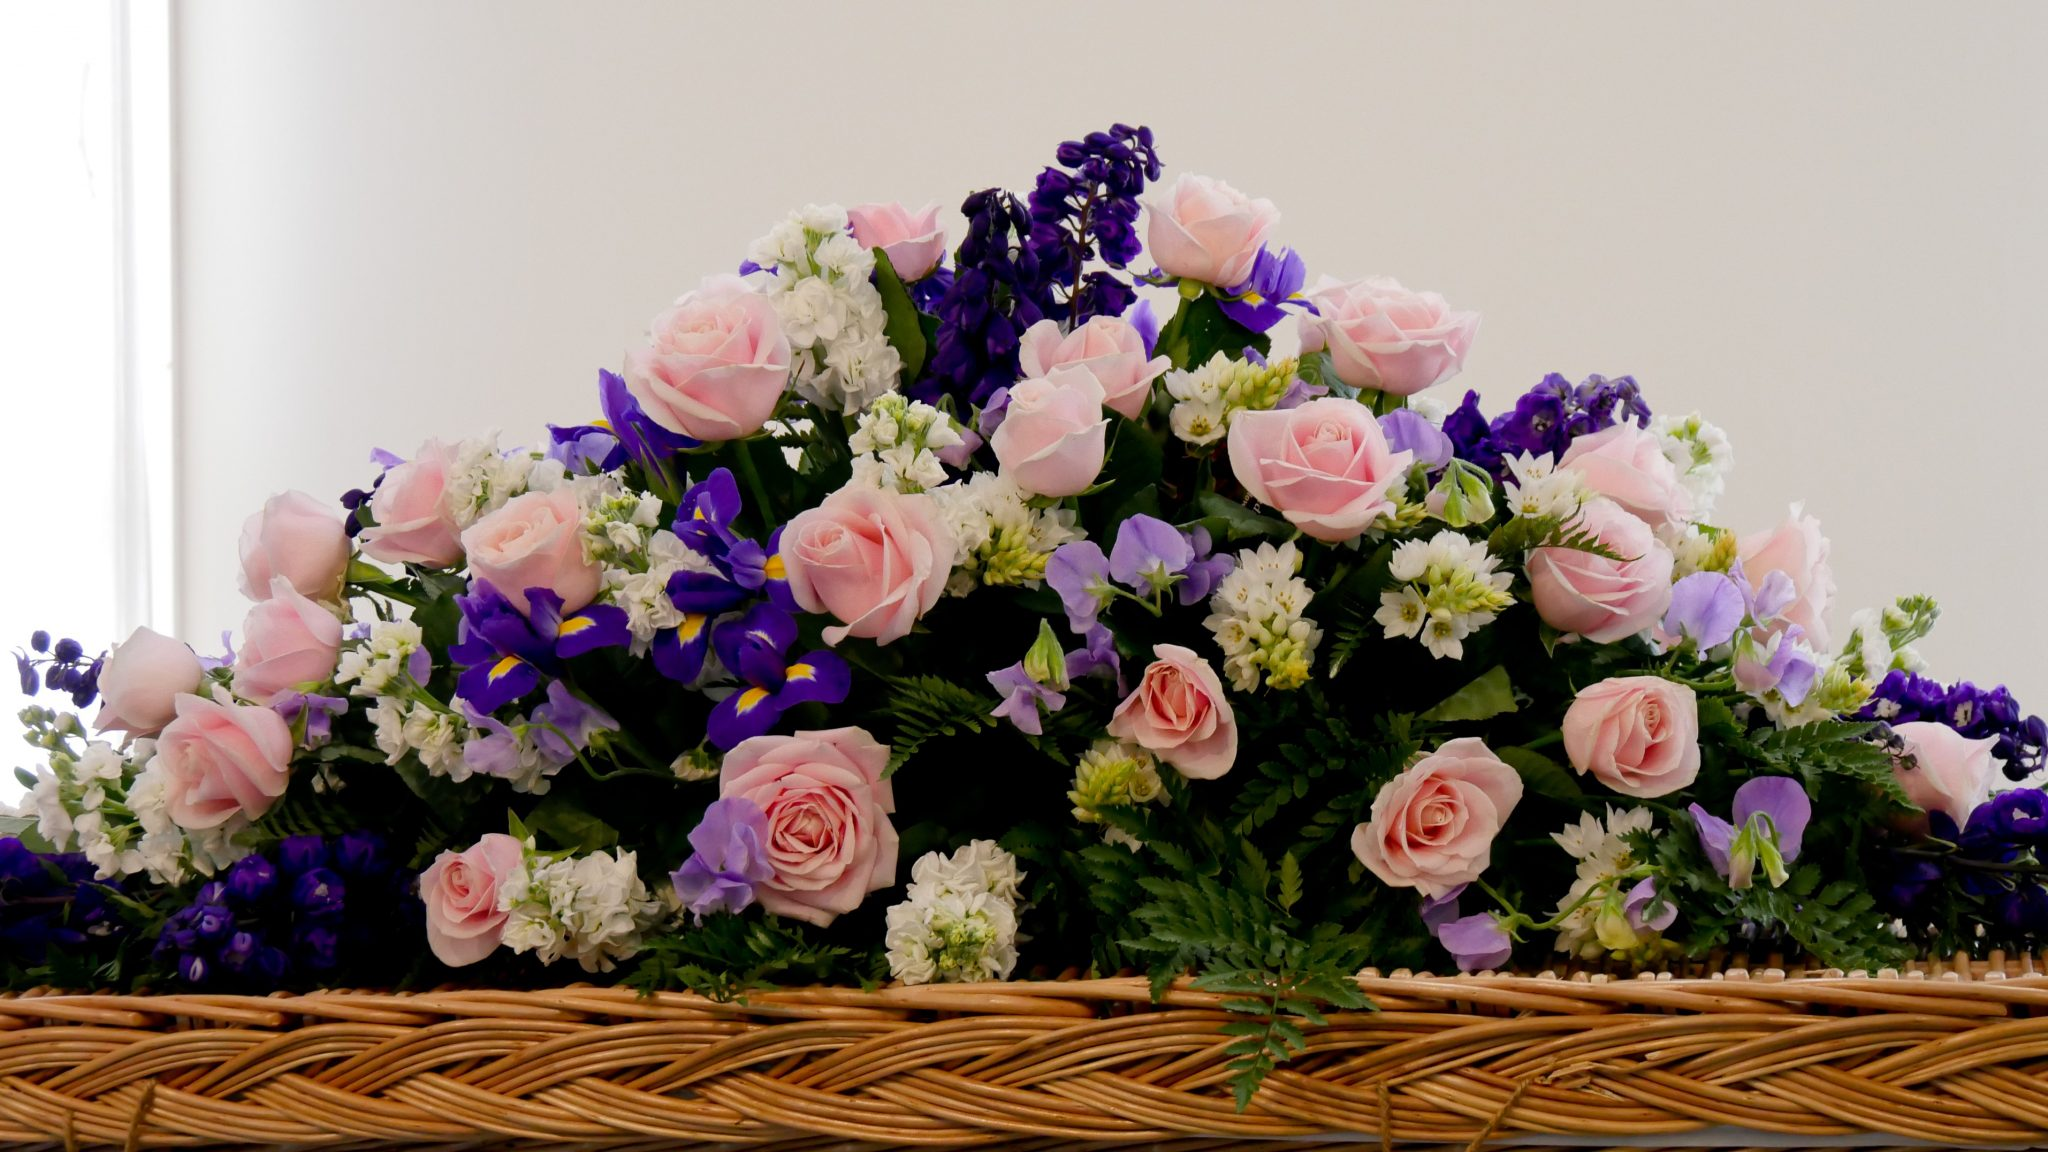 Funeral Flowers Widnes Call Us To Order Your Beautiful Fresh Flowers